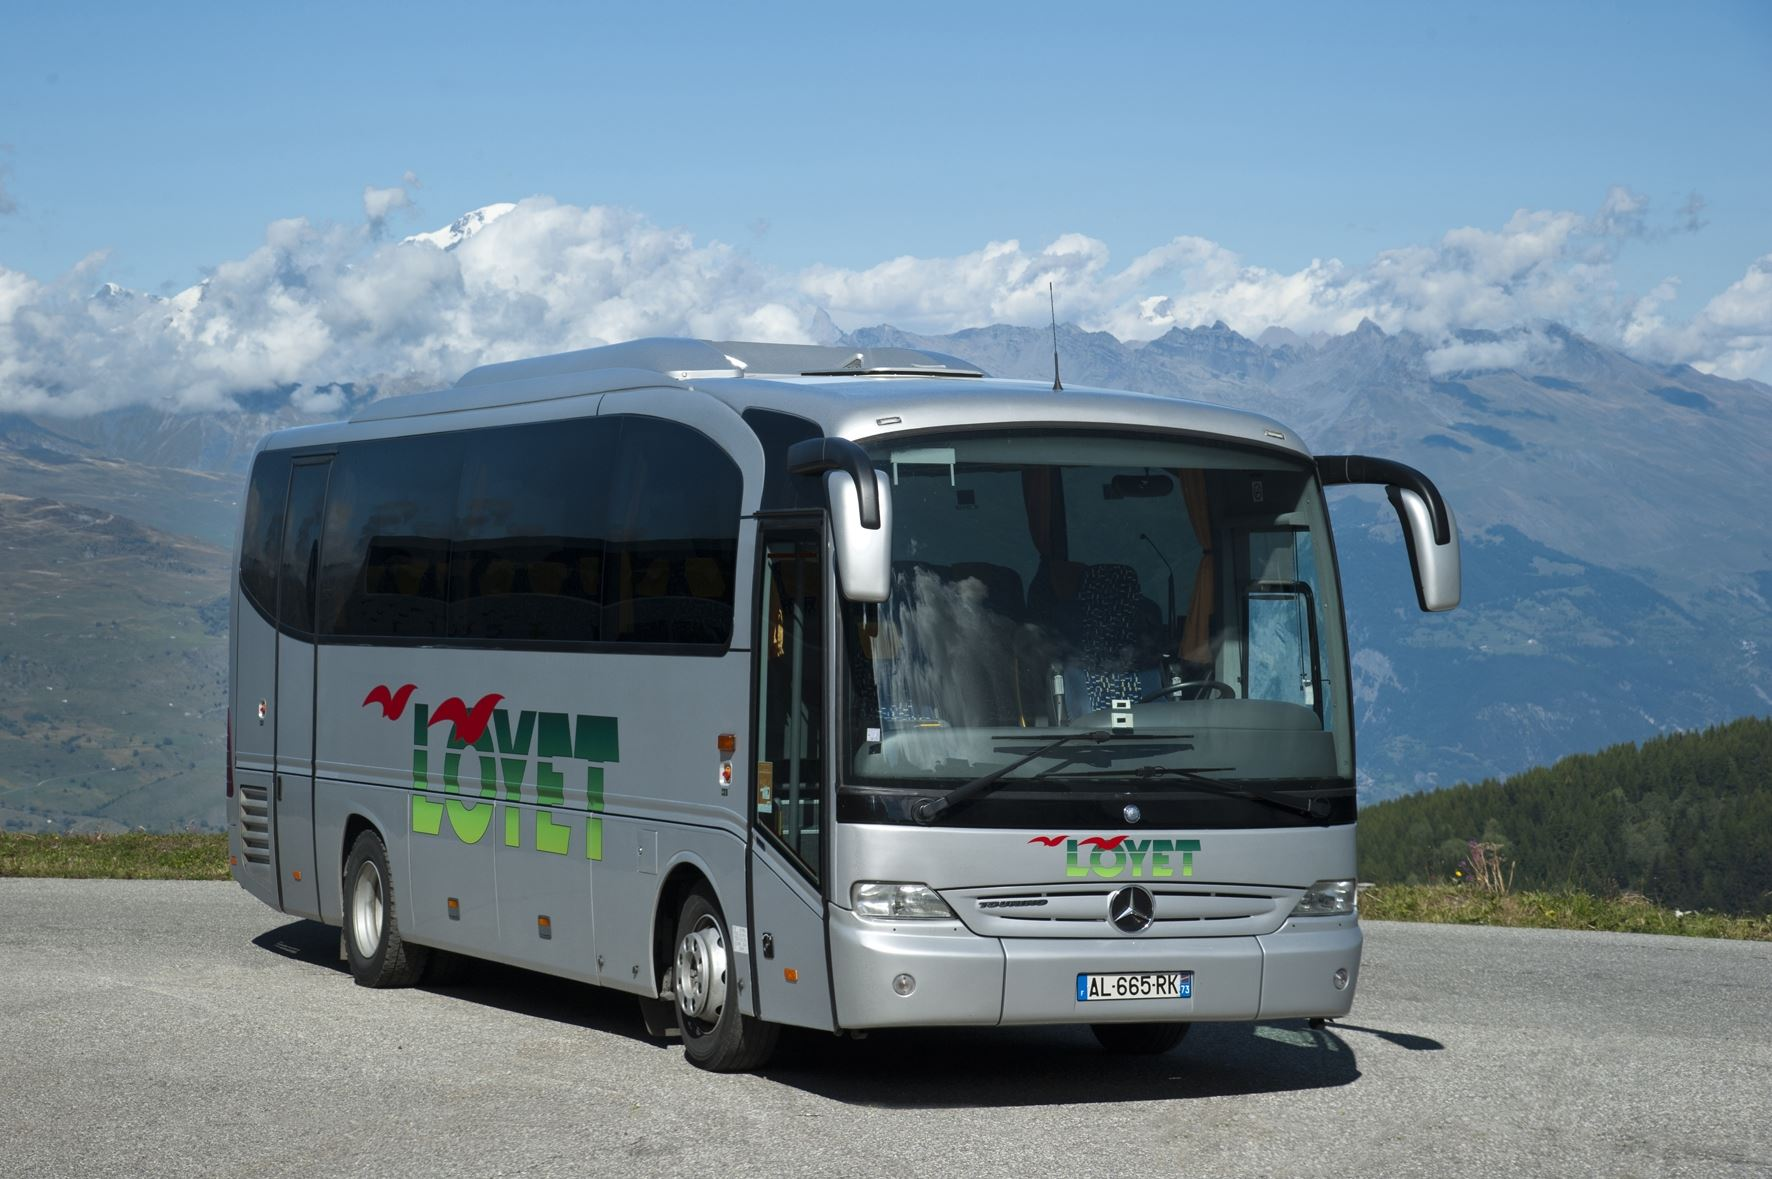 FRIDAY BUS TRANSFER FROM VAL THORENS TO GENEVA AIRPORT - 58€ PER TICKET